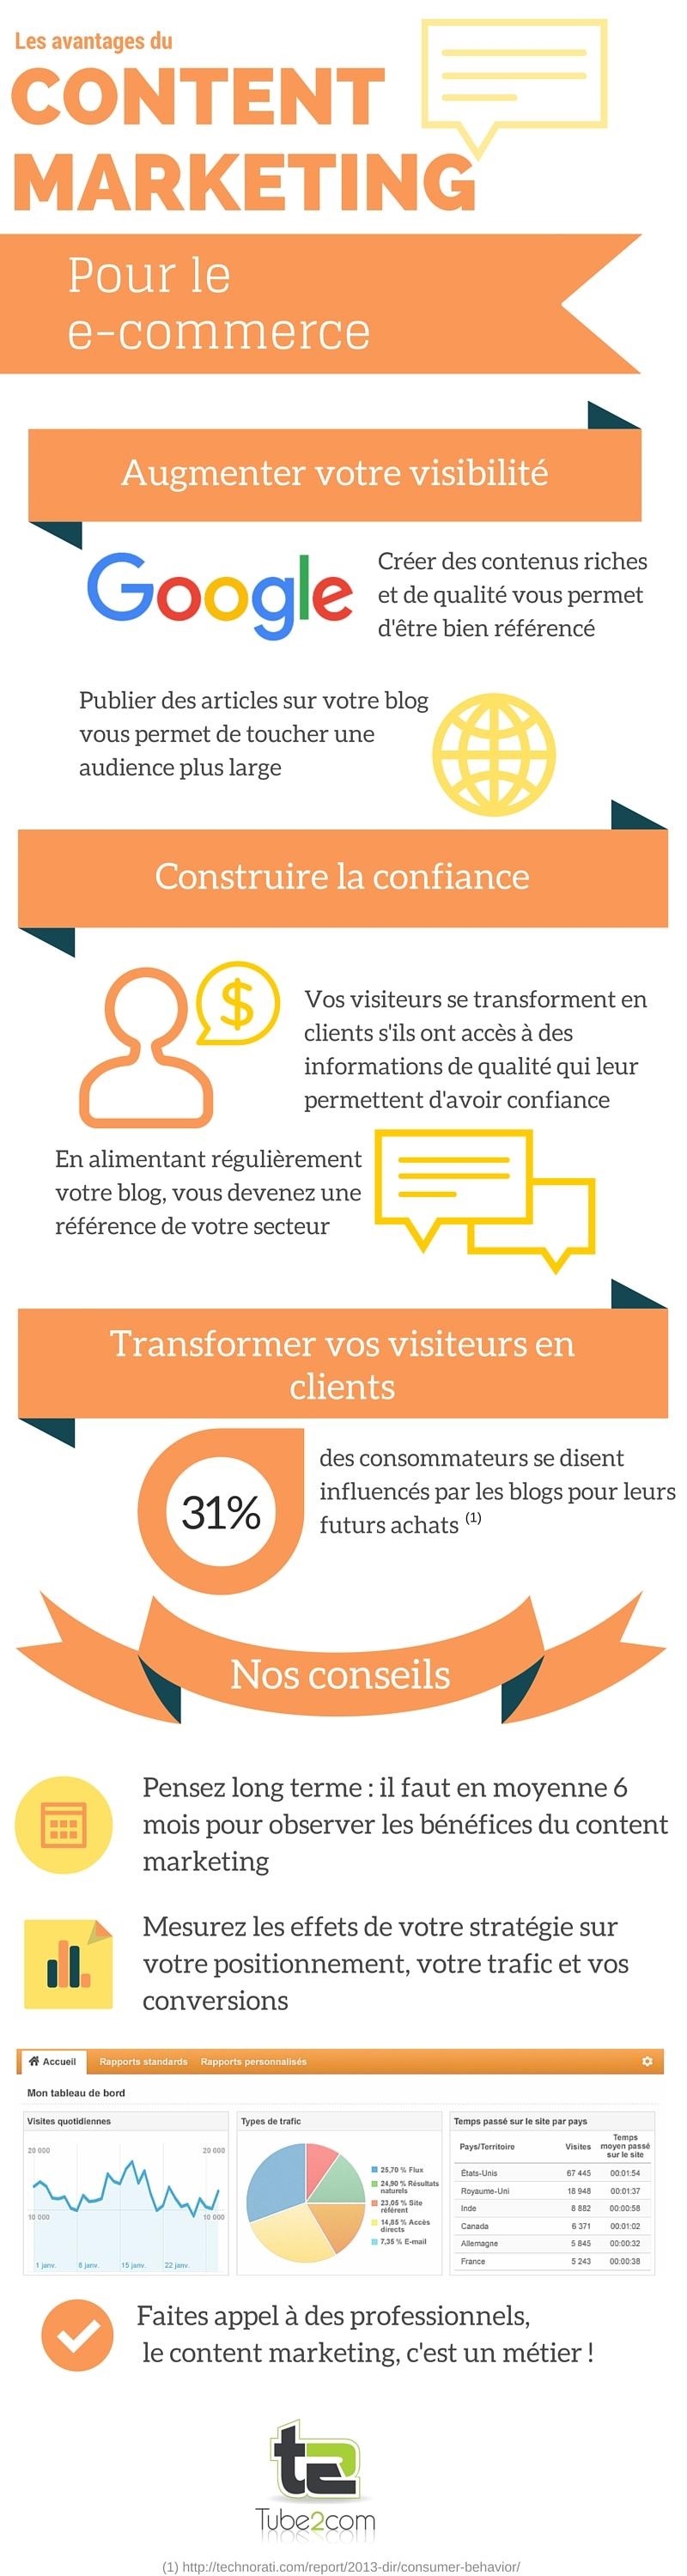 infographie content marketing e-commerce